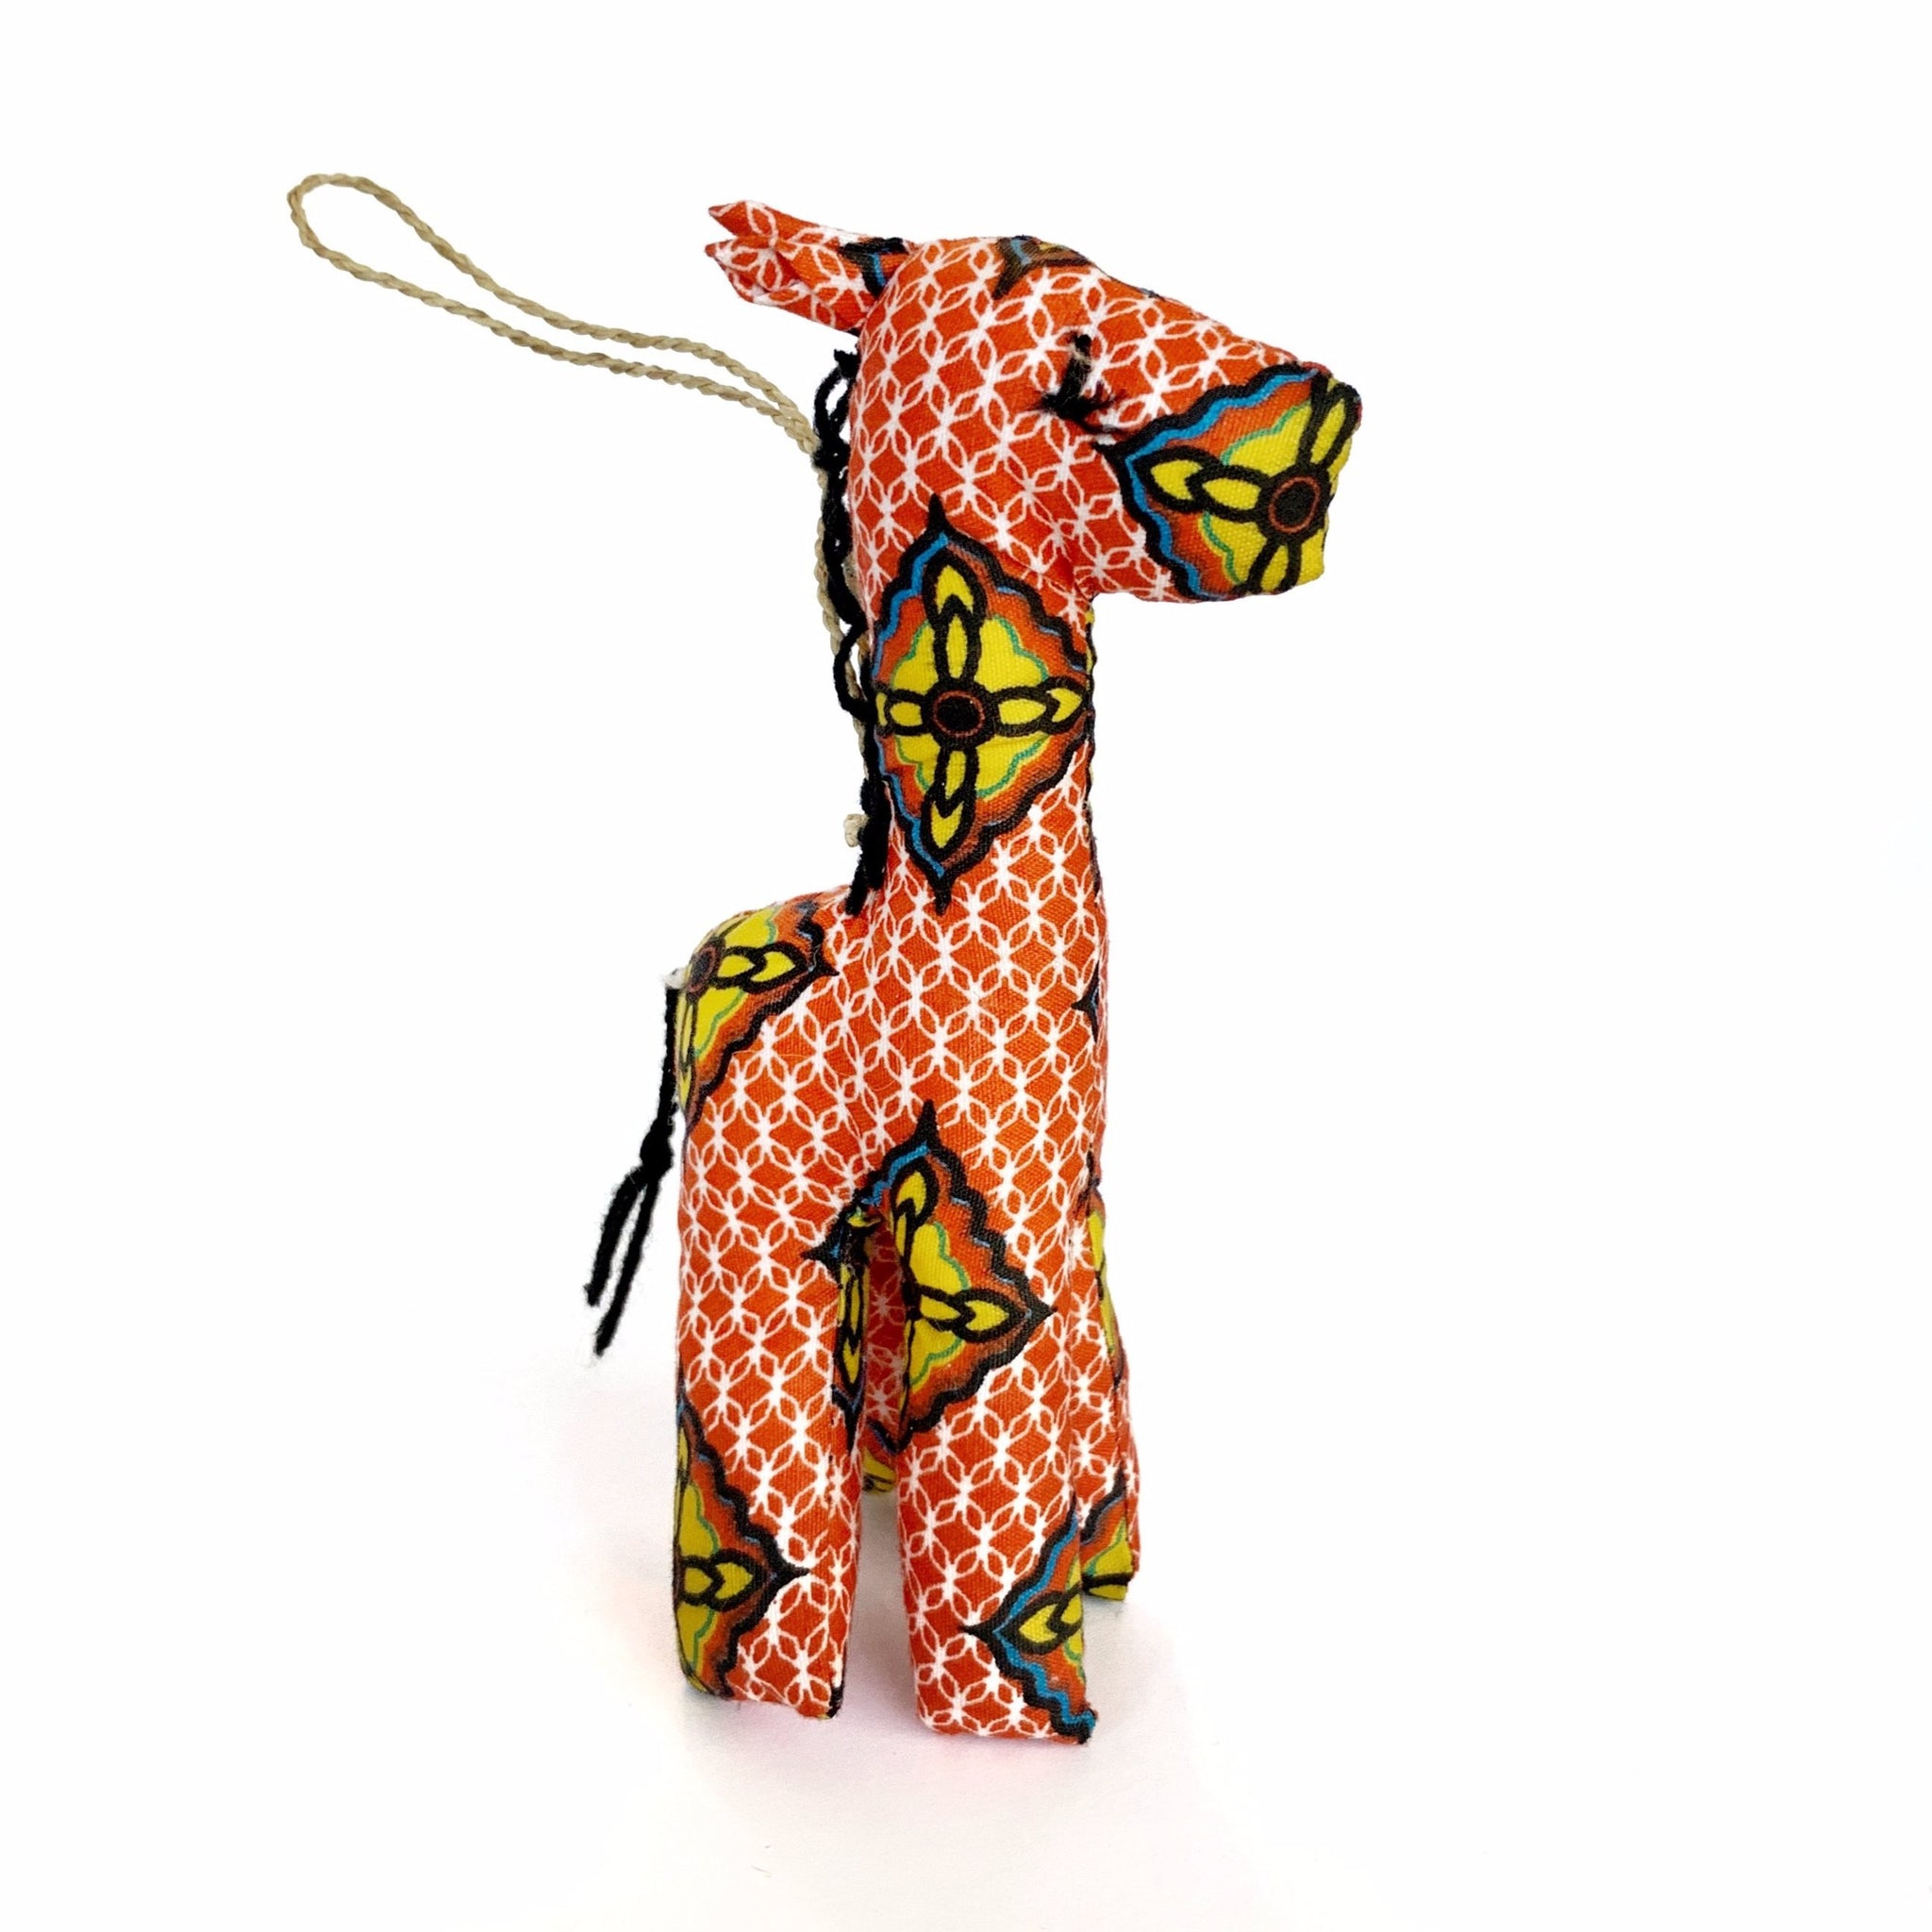 Stuffed Giraffe Ornament Orange Fair Trade